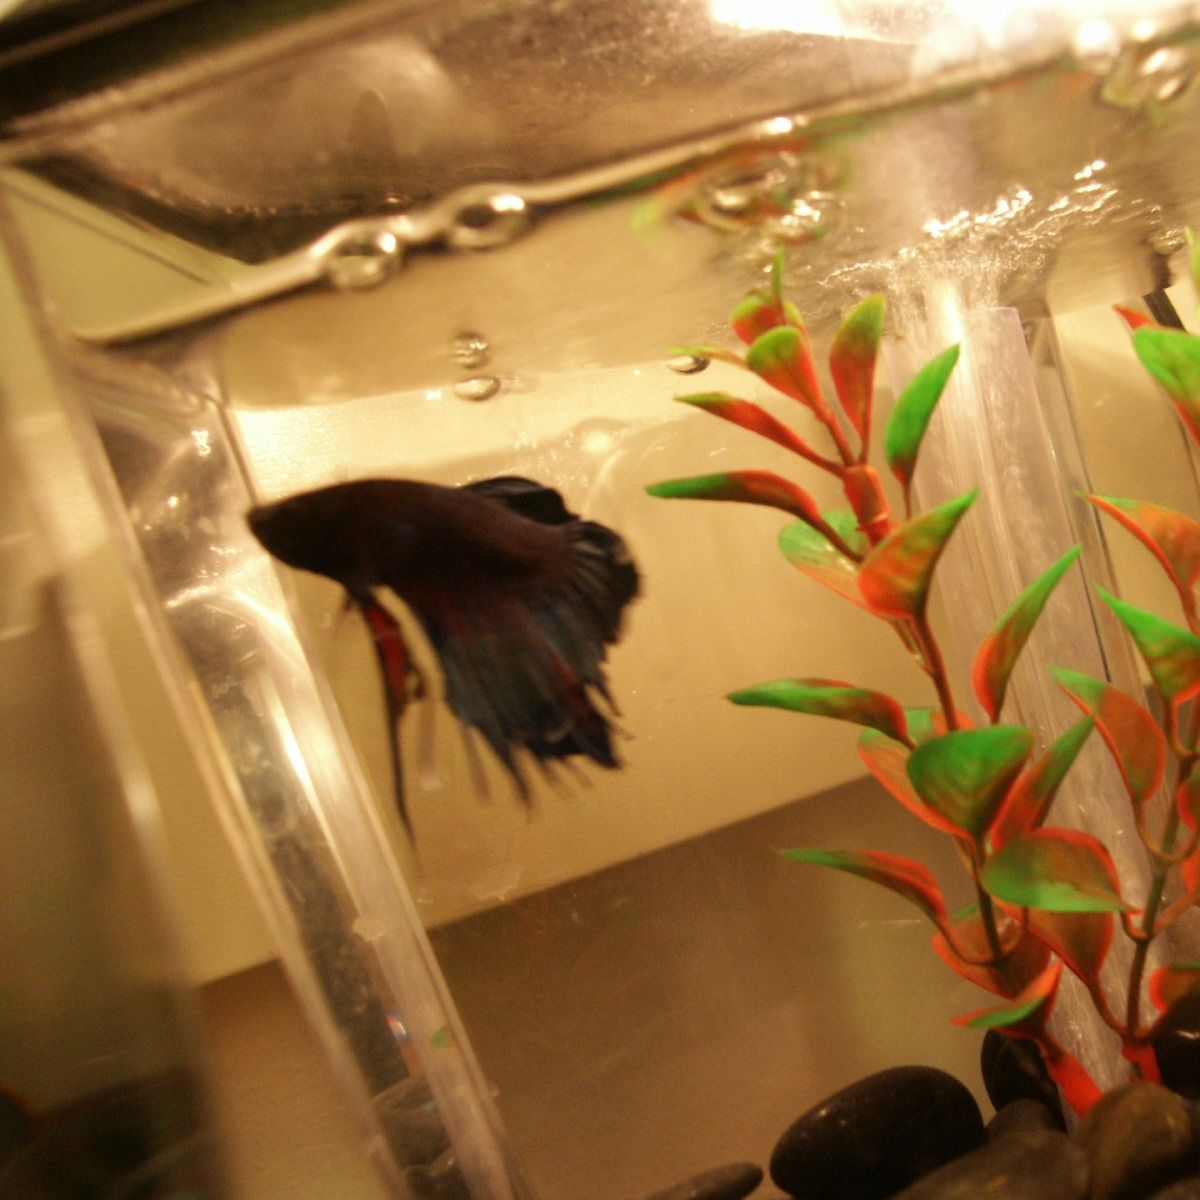 Fish aquarium cleaning tips -  Pet Sitters International Shares Tips For Pet Owners And Pet Sitters Who Need More Information On Caring For Betta Fish How To Clean Your Aquarium